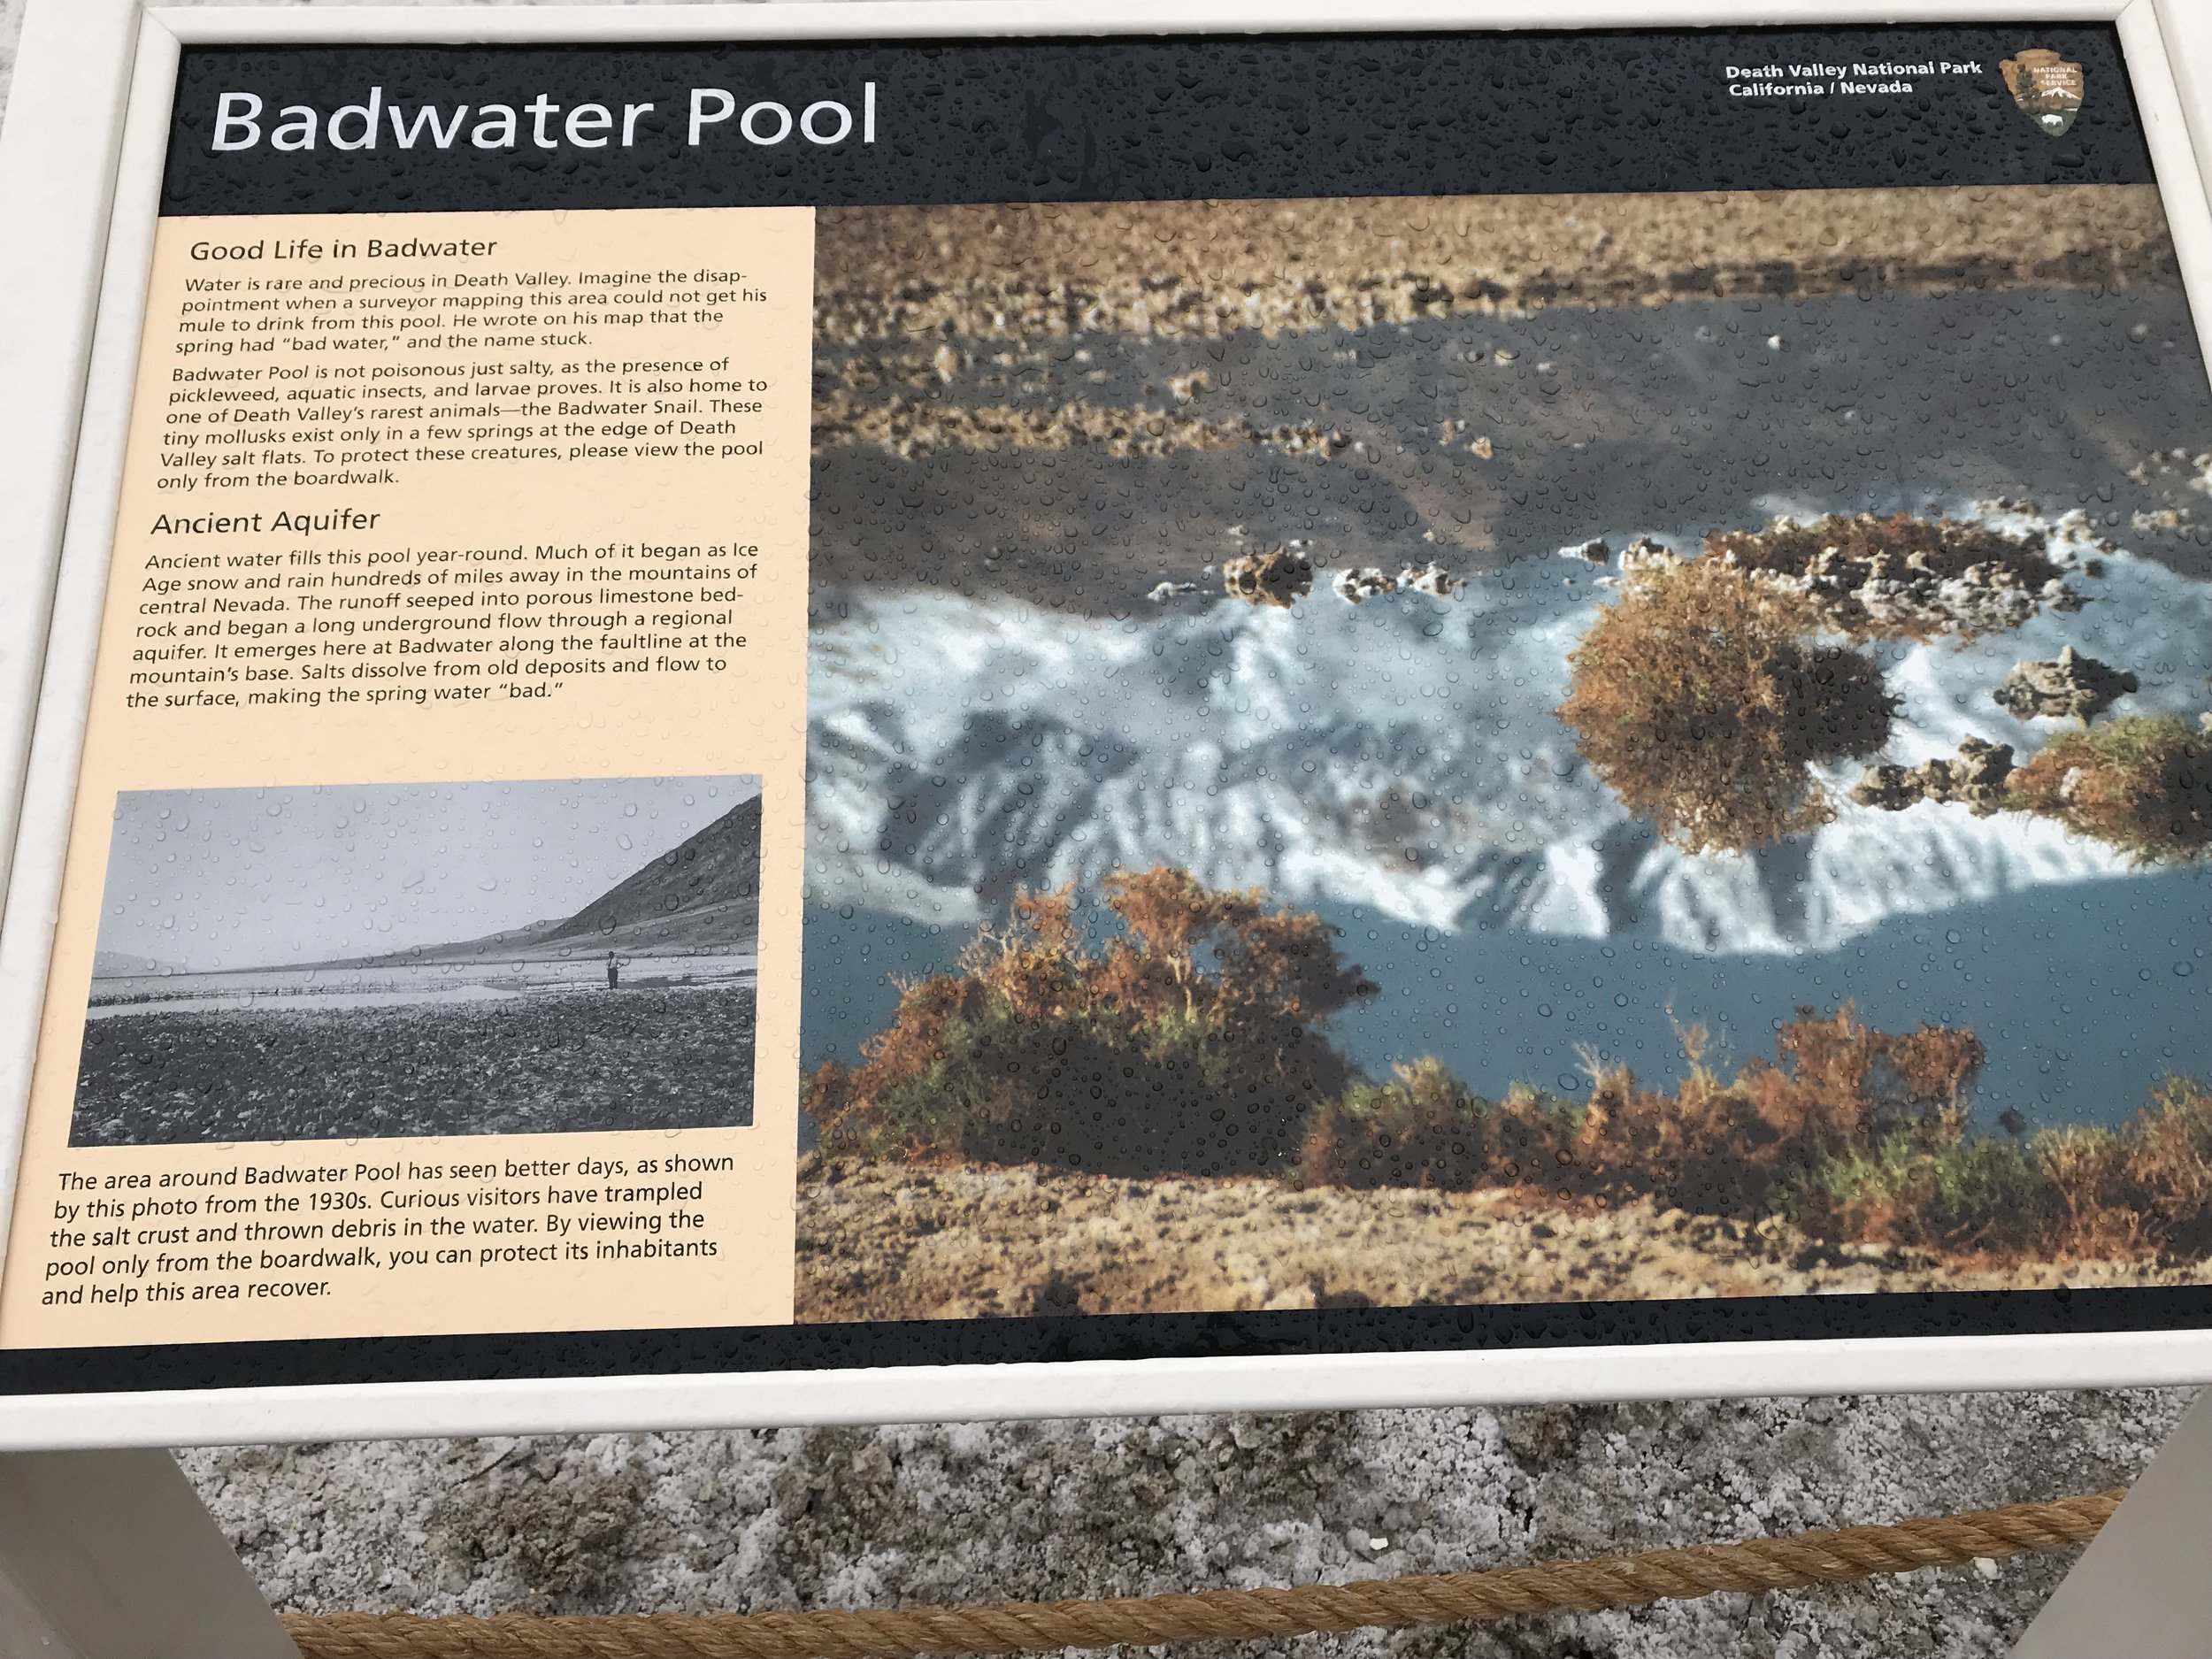 Badwater Pool Informational Sign  Badwater Basin, Death Valley National Park, Photo By: Nichole McDaniel